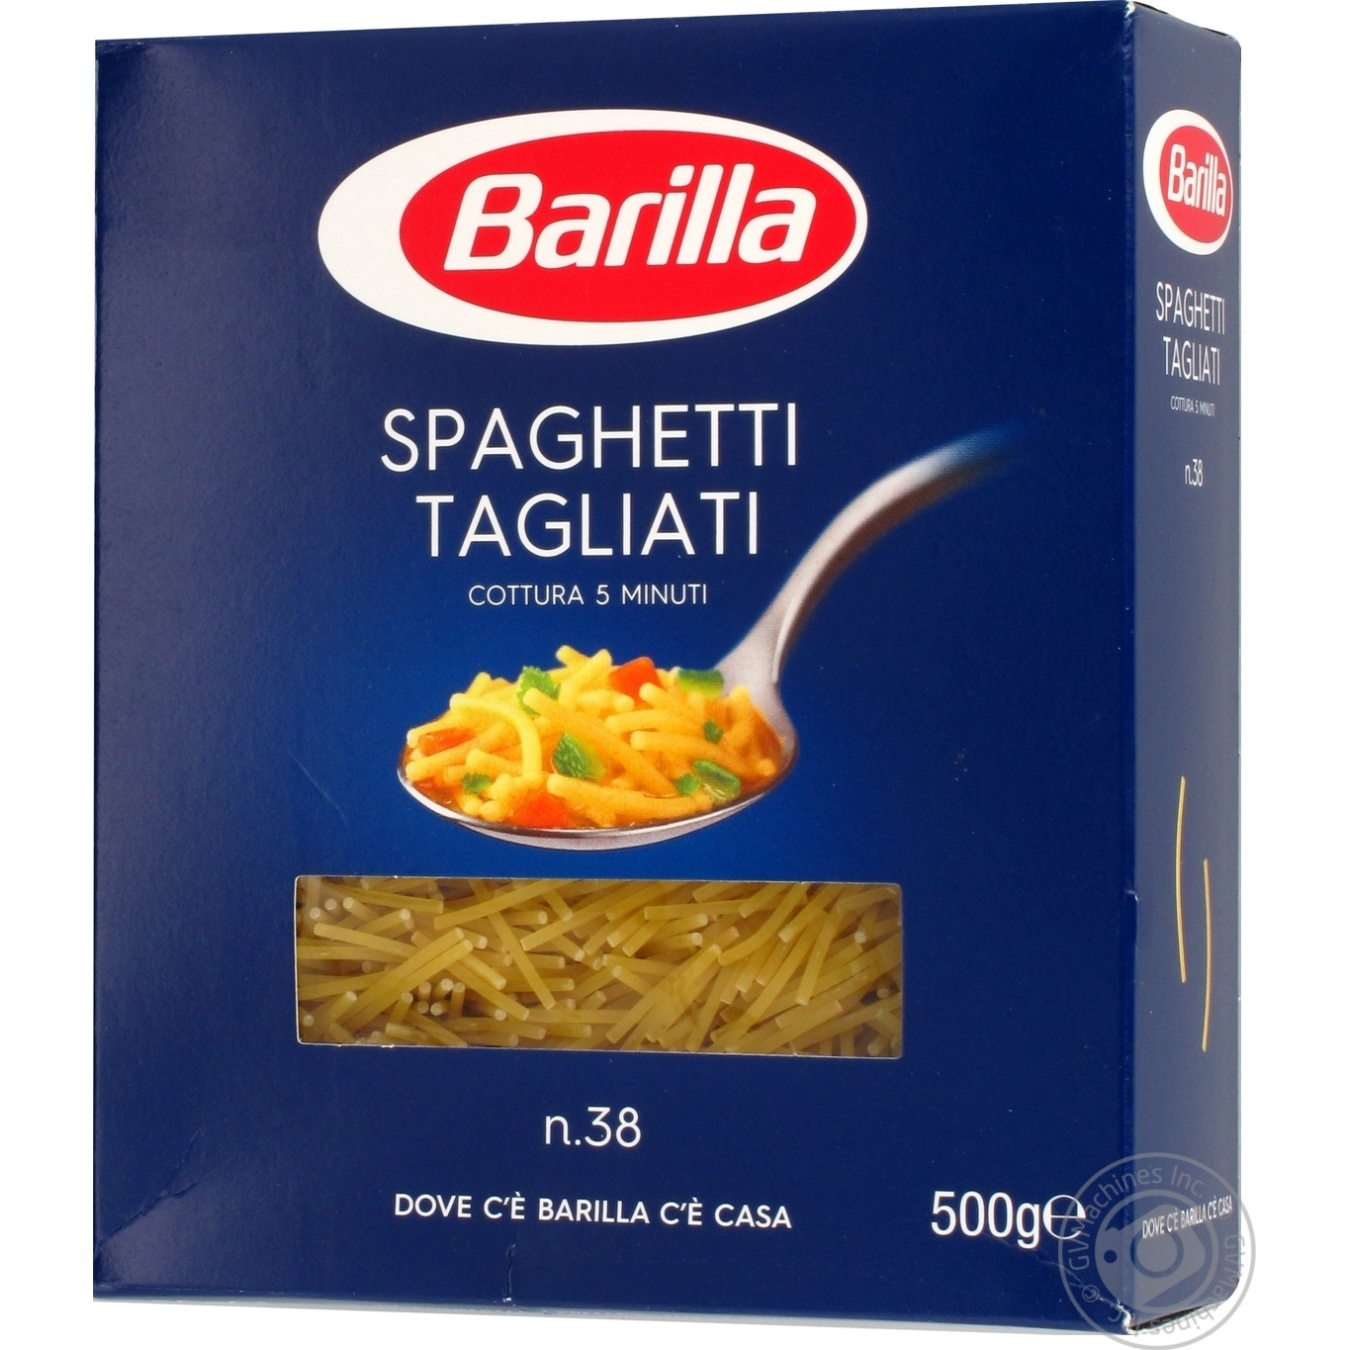 barilla what is the impact of